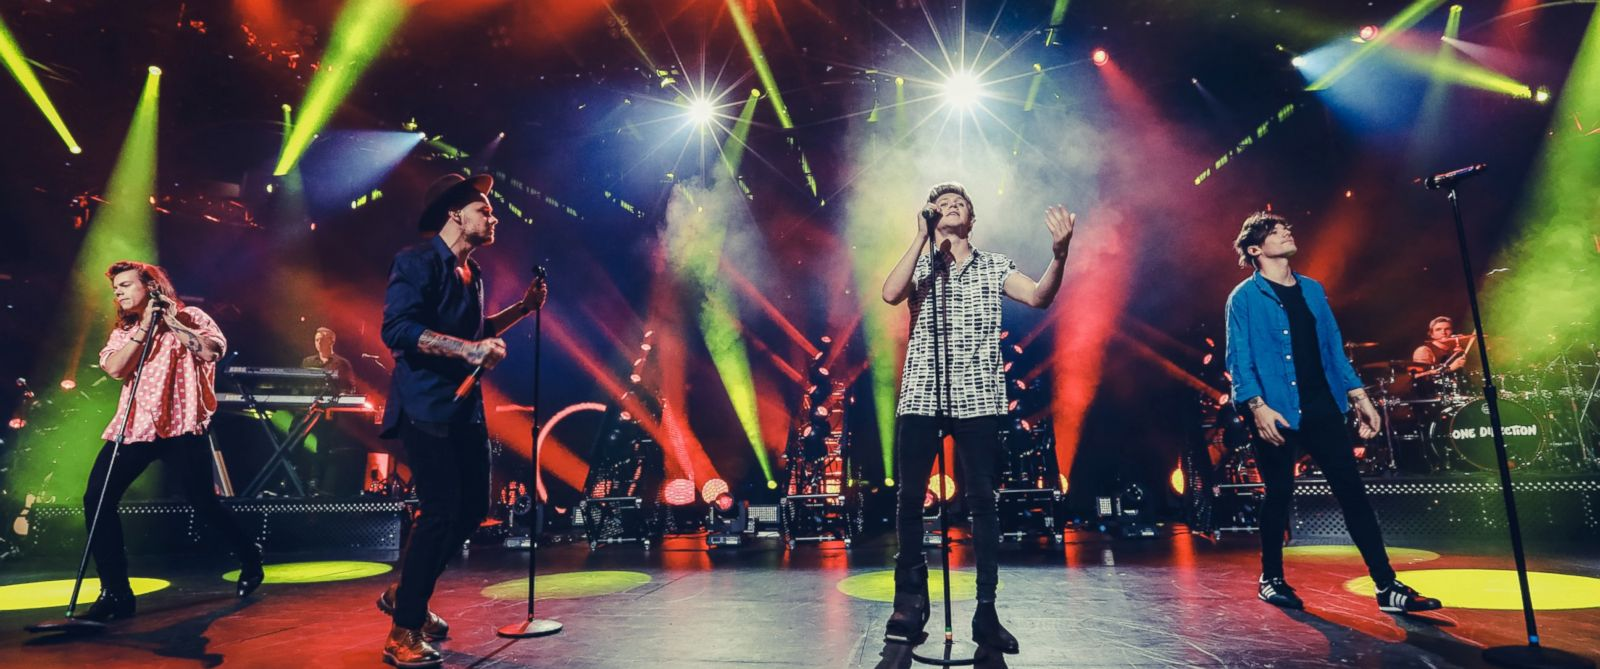 PHOTO: Harry Styles, Liam Payne, Niall Horan and Louis Tomlinson of One Direction perform on stage at The Roundhouse on Sept. 22, 2015 in London.